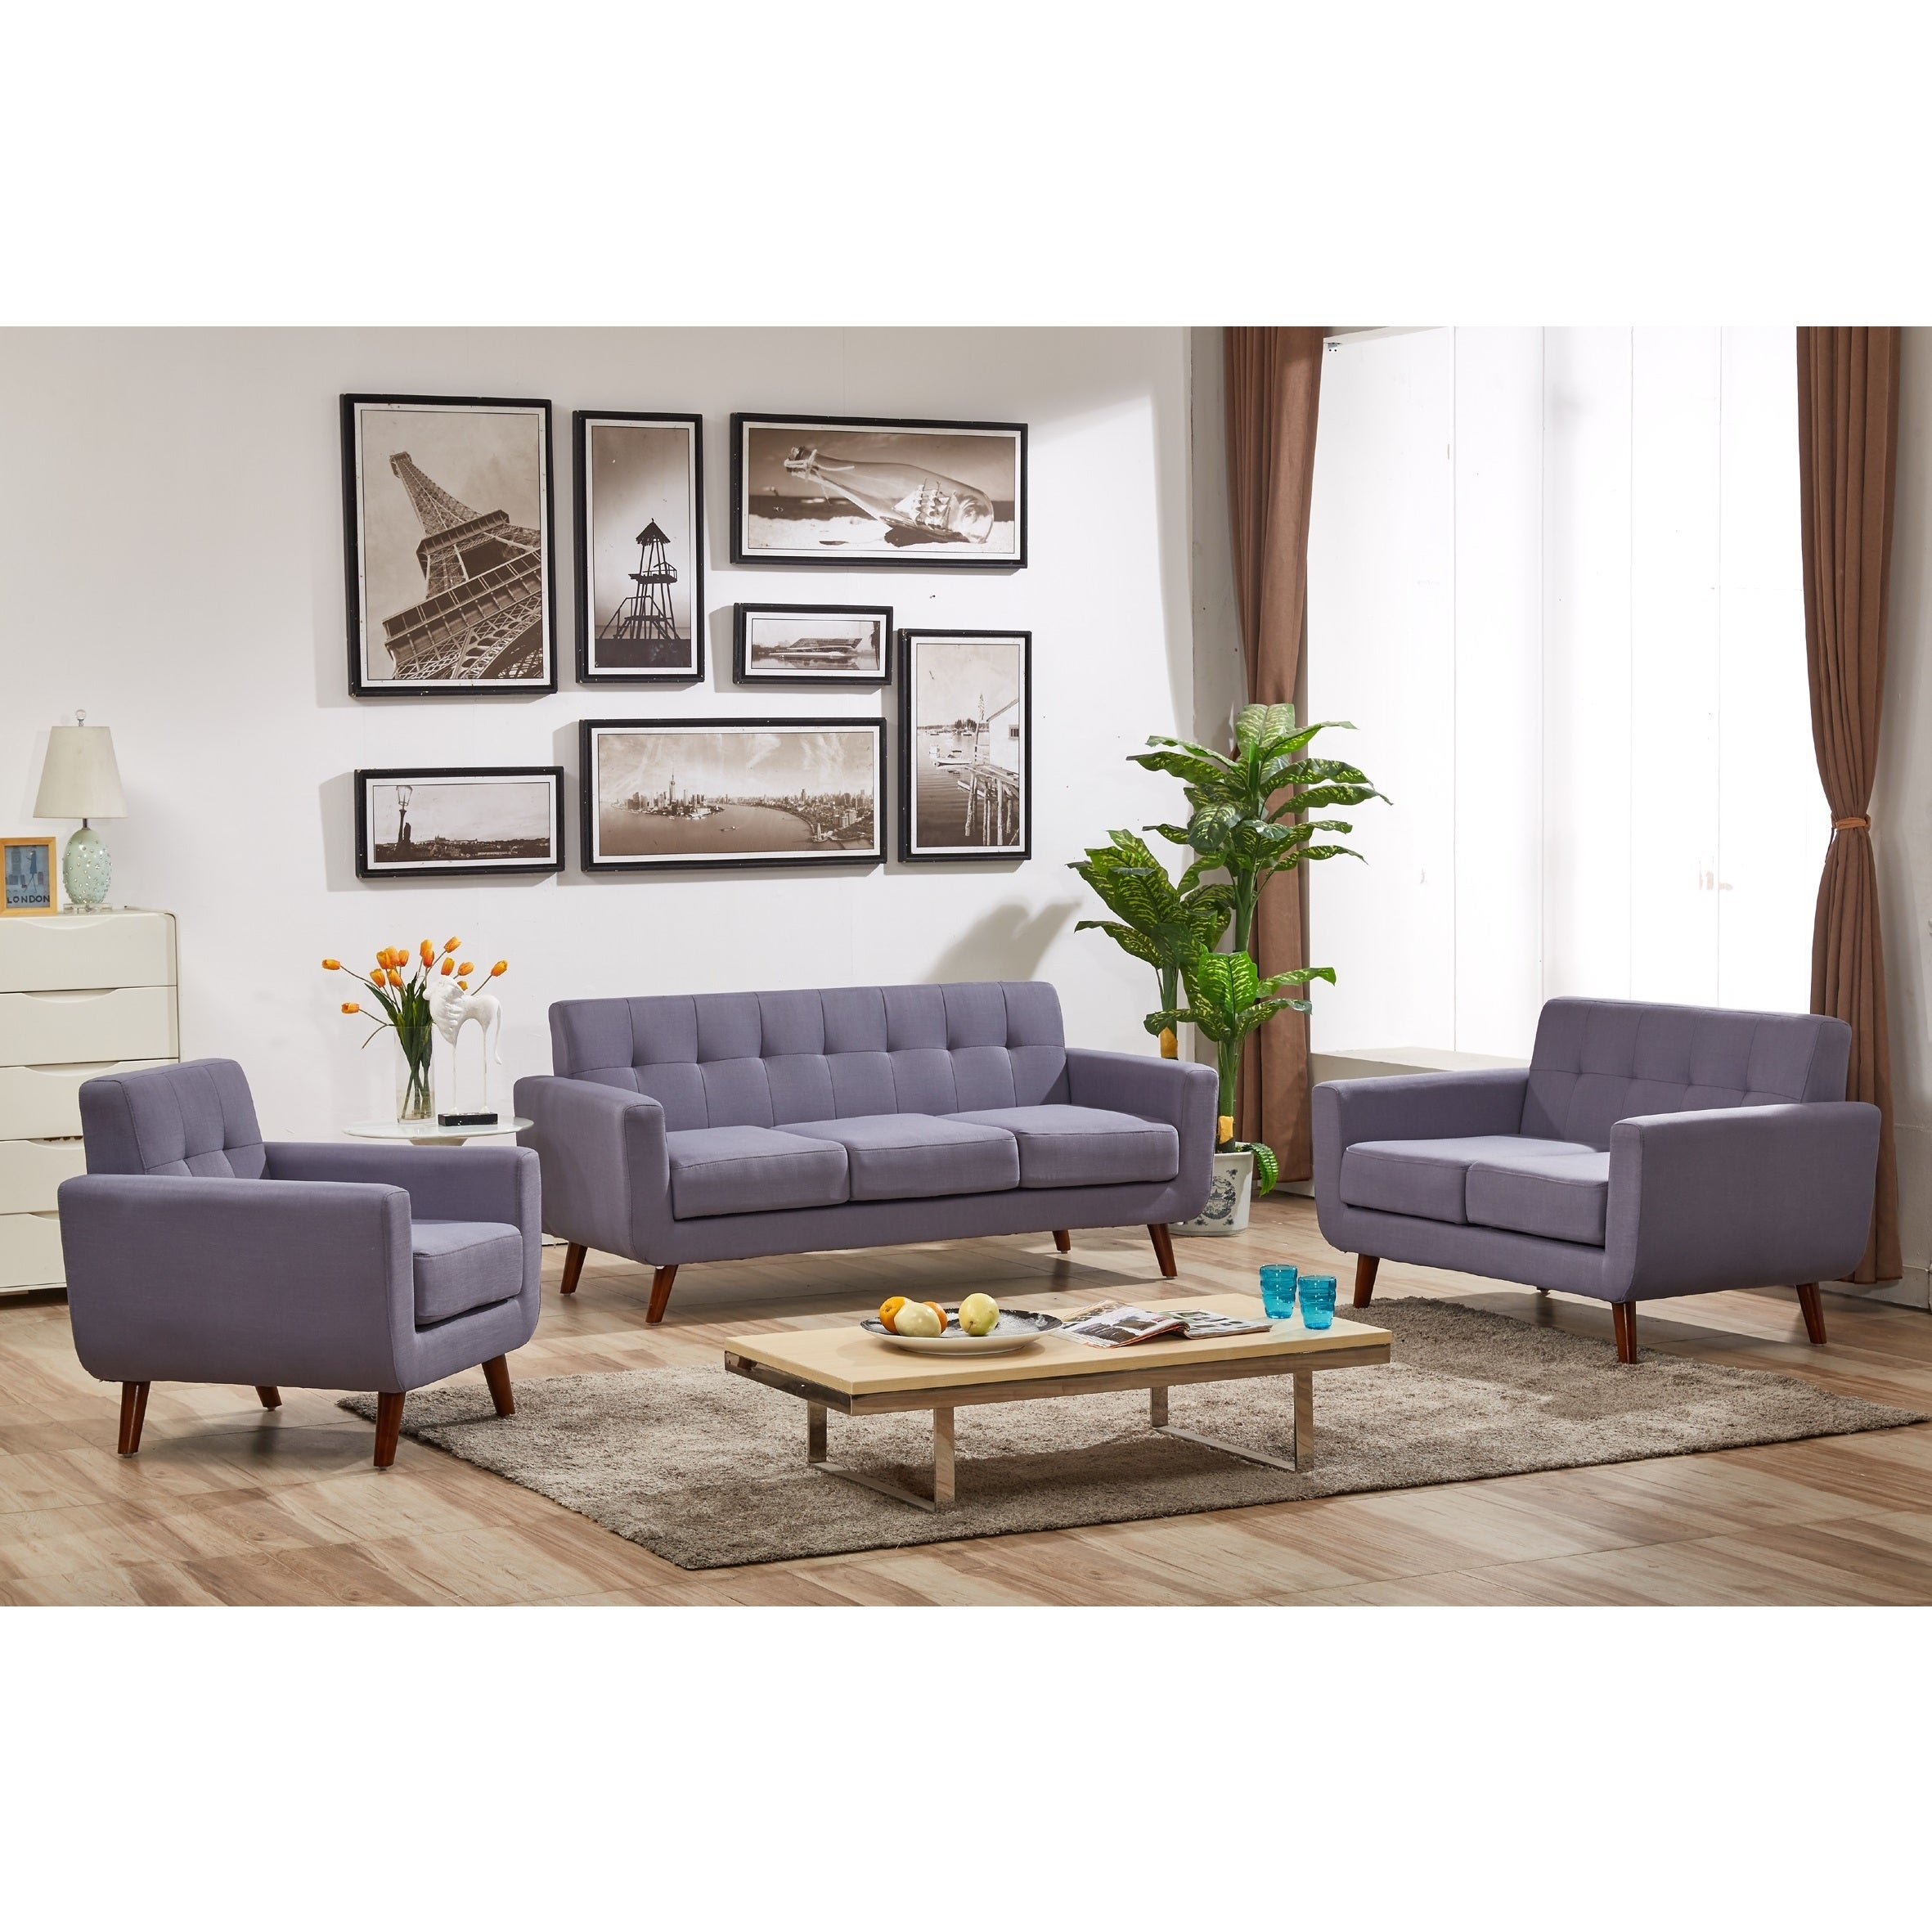 with cool table chairs living sets accent loveseat classically sitting room rugs large furniture arms rooms classic